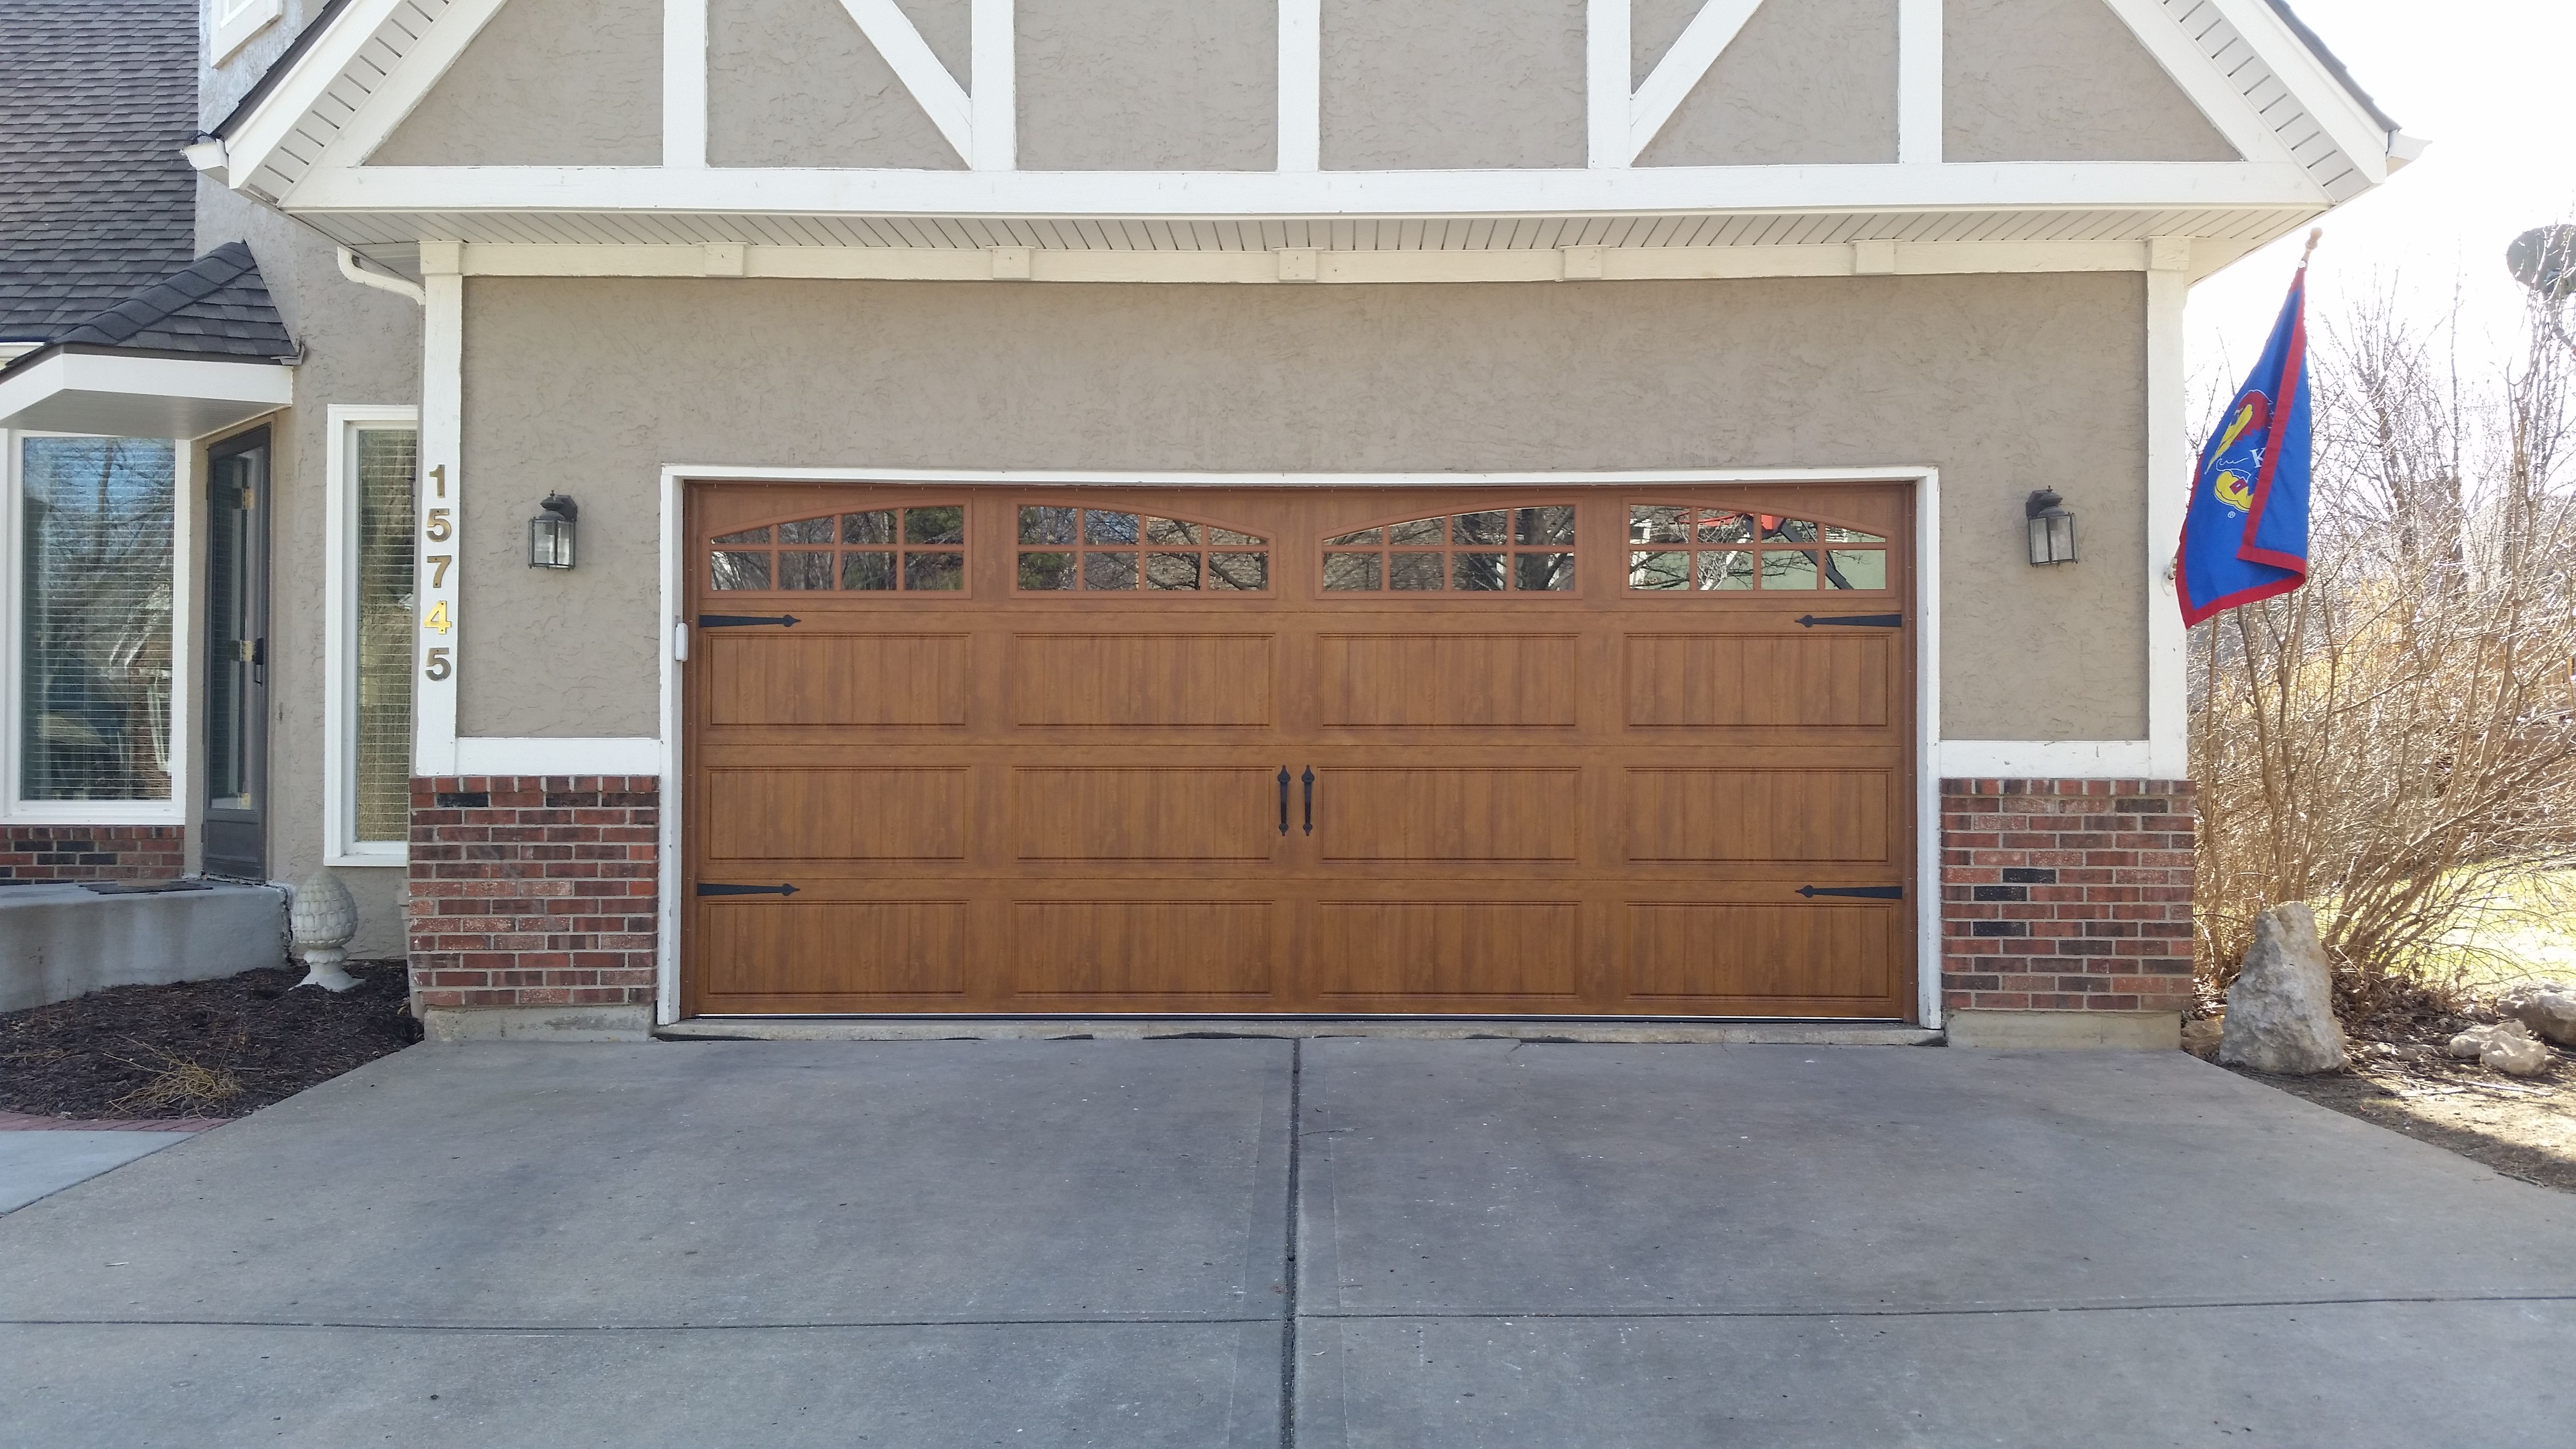 Gallery collection clopay garage doors carriage style with for Clopay garage door colors